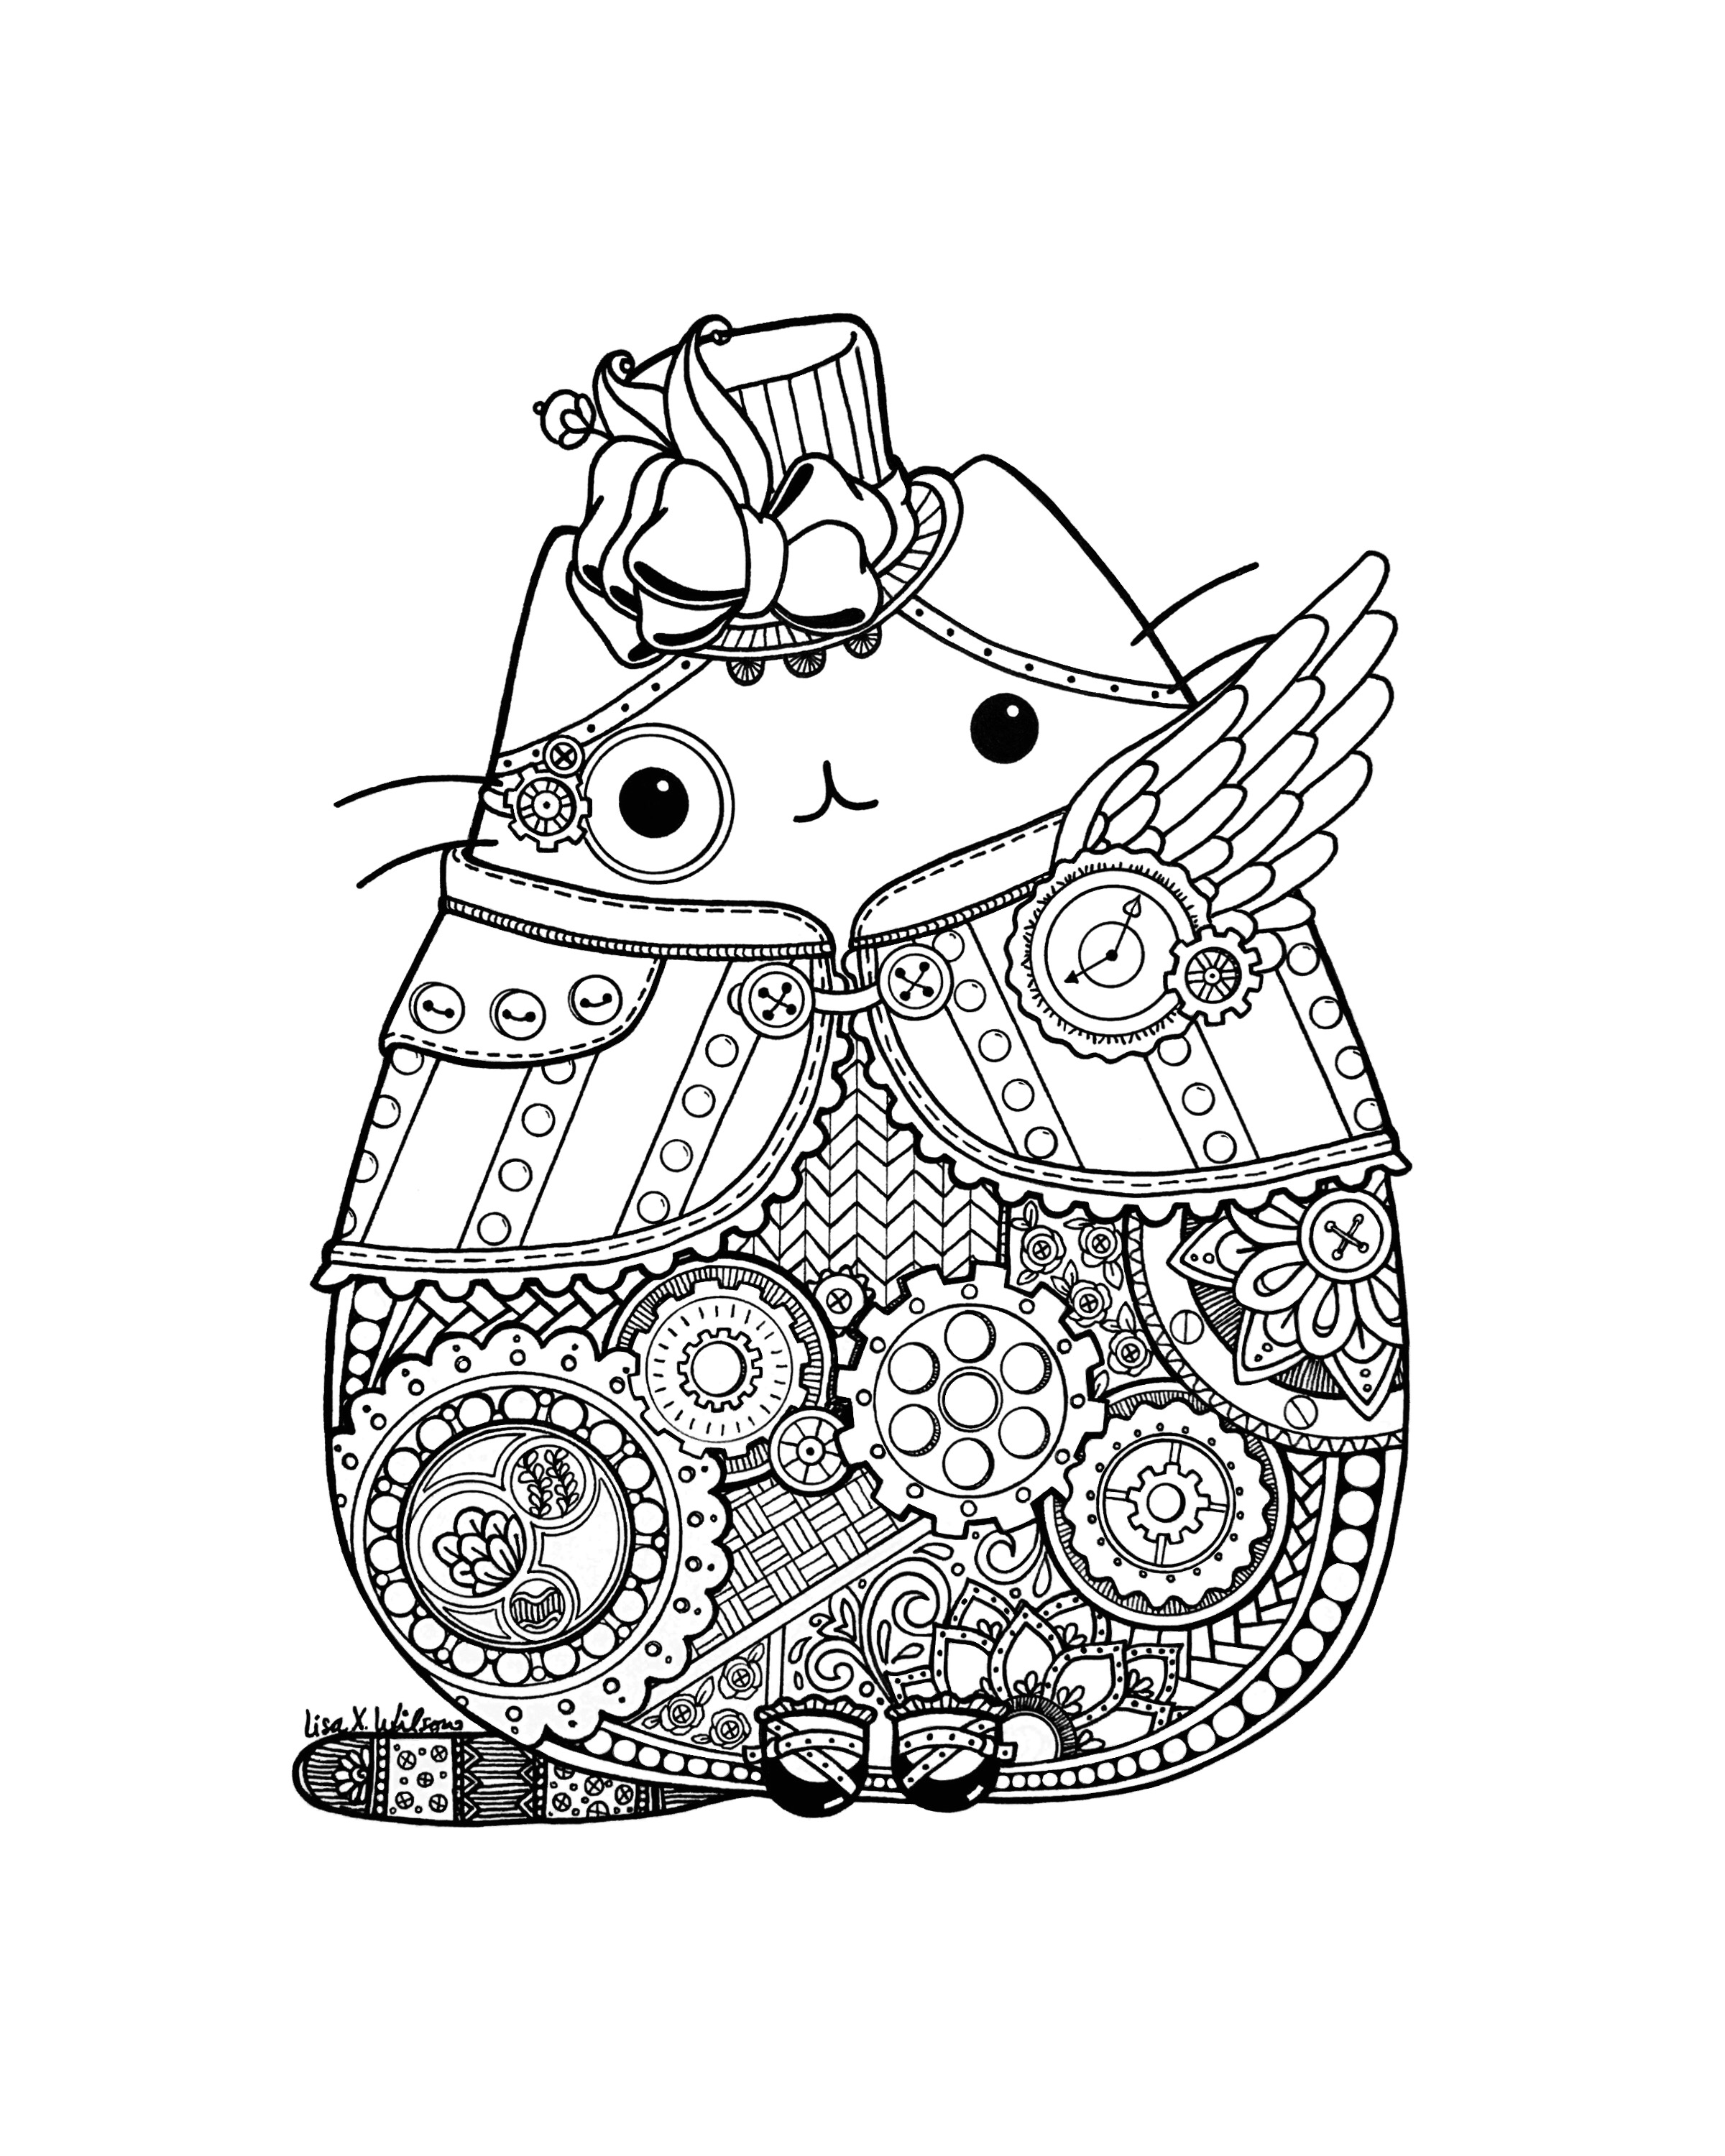 2400x3000 Steampunk Pusheen Fan Art Pusheen! Pusheen, Fan